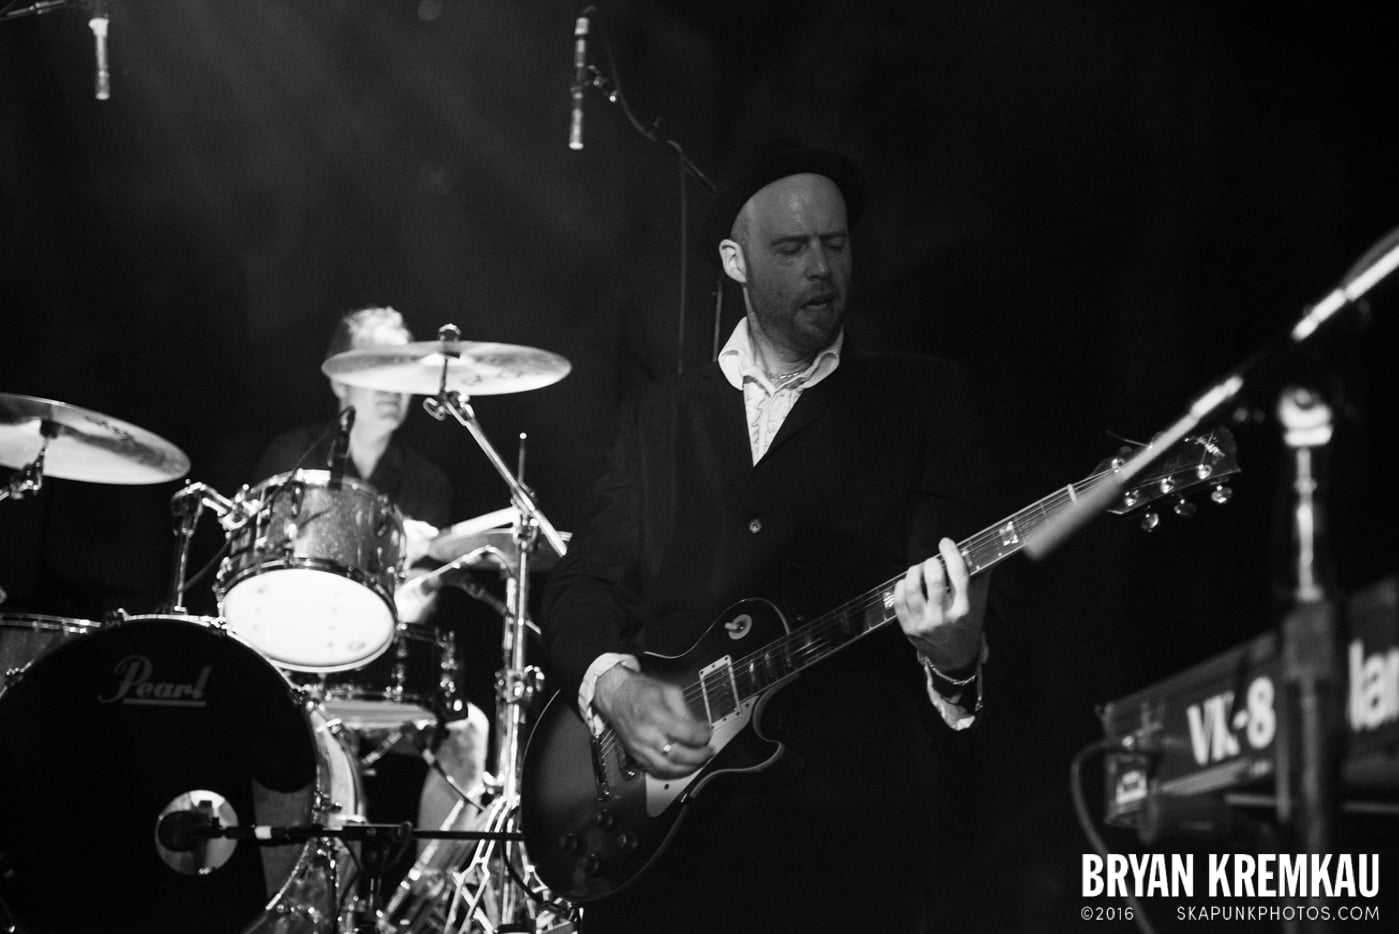 The Slackers @ Apple Stomp: Day 2, Irving Plaza, NYC - June 1st 2013 - Bryan Kremkau (22)